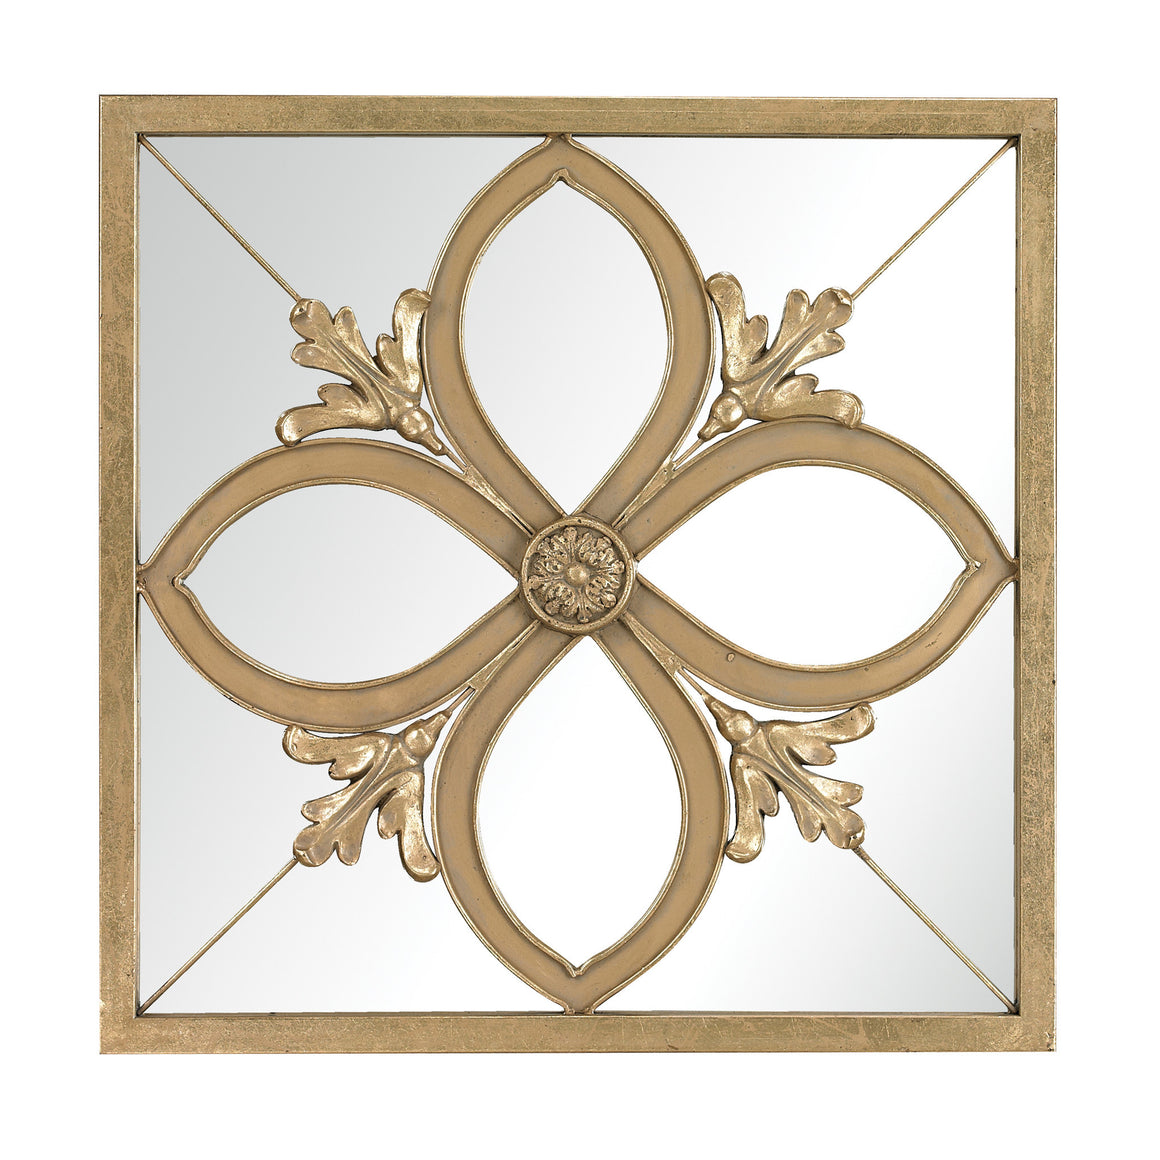 Albern Four Leaf Clover Mirror by Sterling